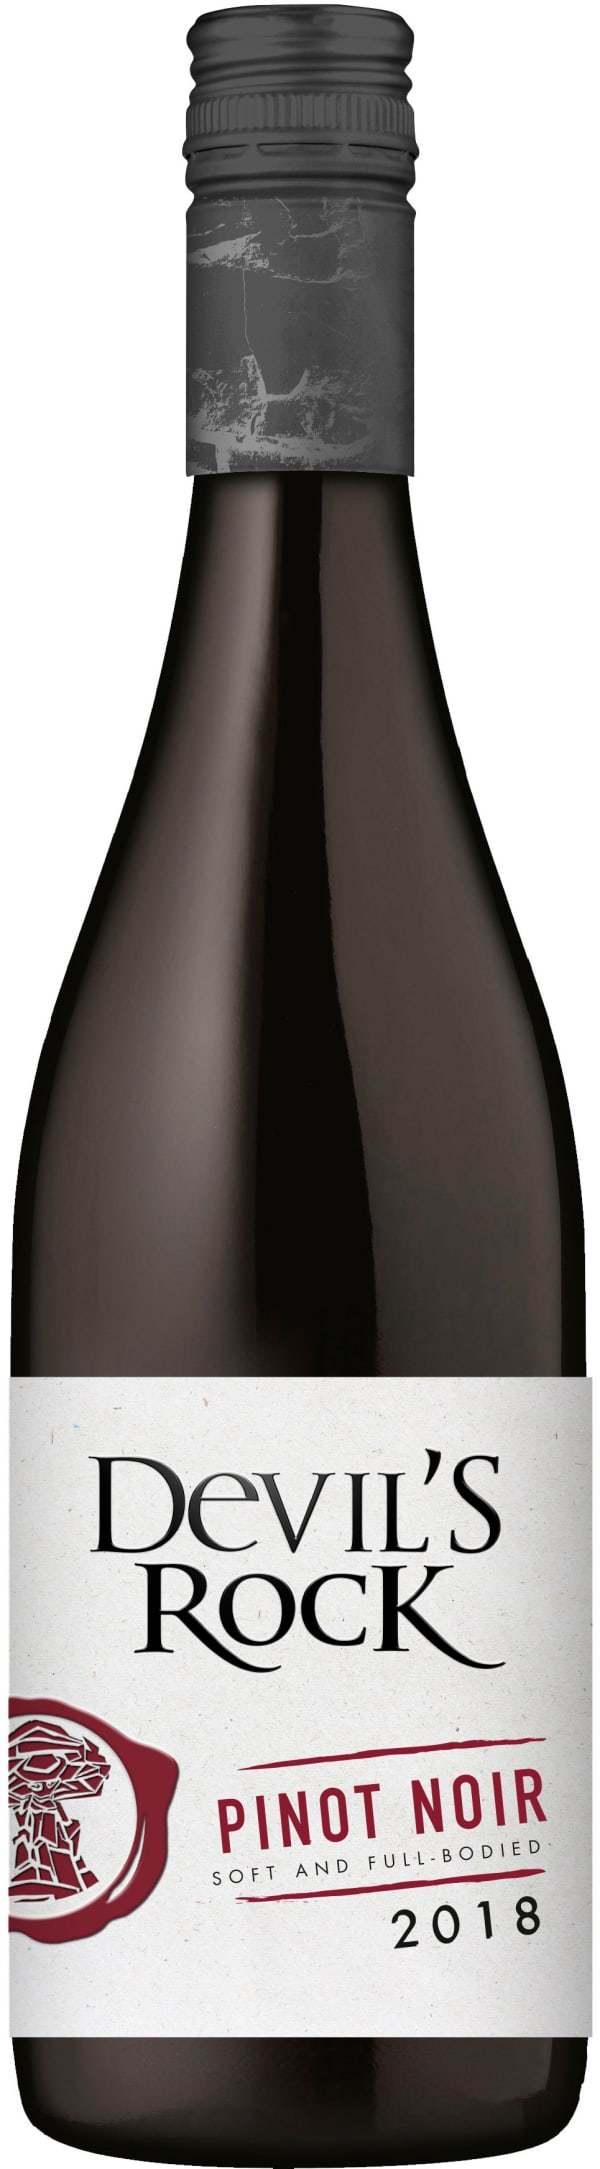 Devil's Rock Pinot Noir 2018